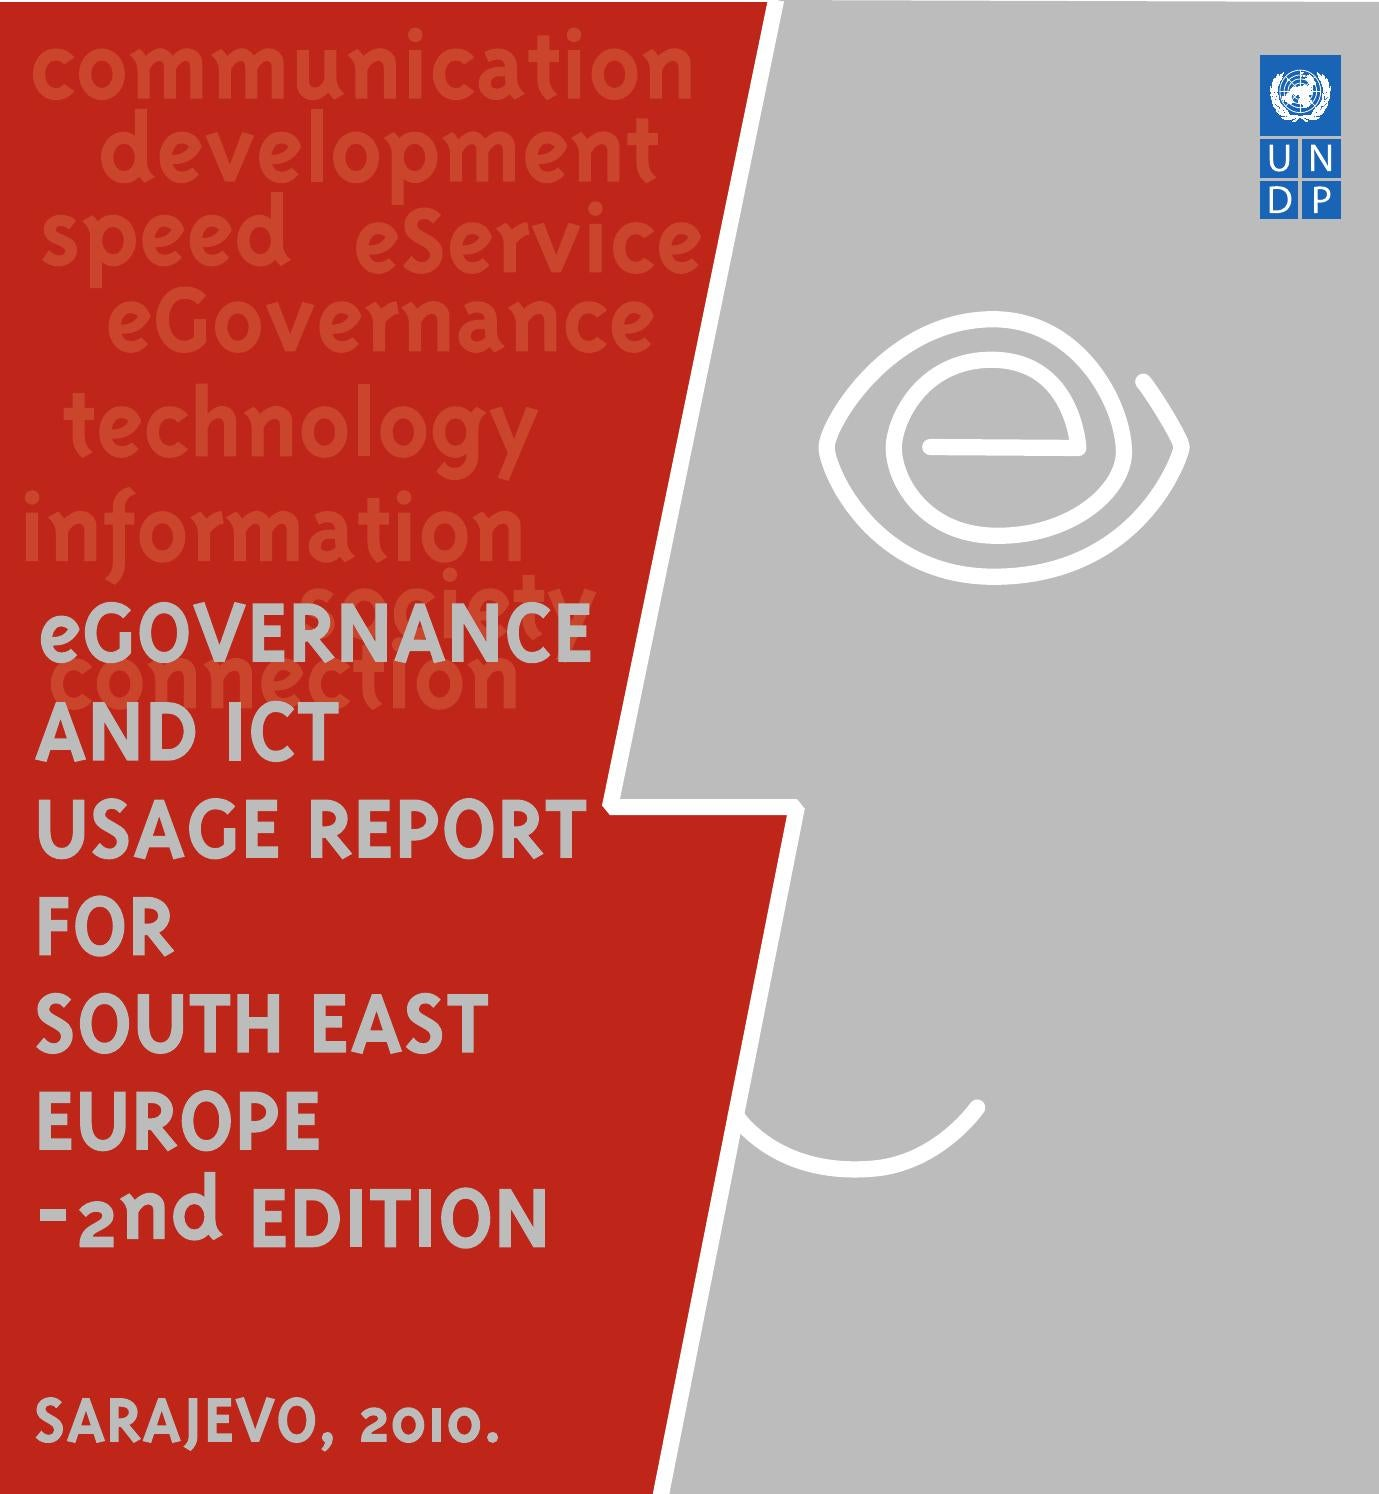 eGOVERNANCE AND ICT USAGE REPORT FOR SOUTH EAST EUROPE – 2nd EDITION by  UNDP in BiH - issuu